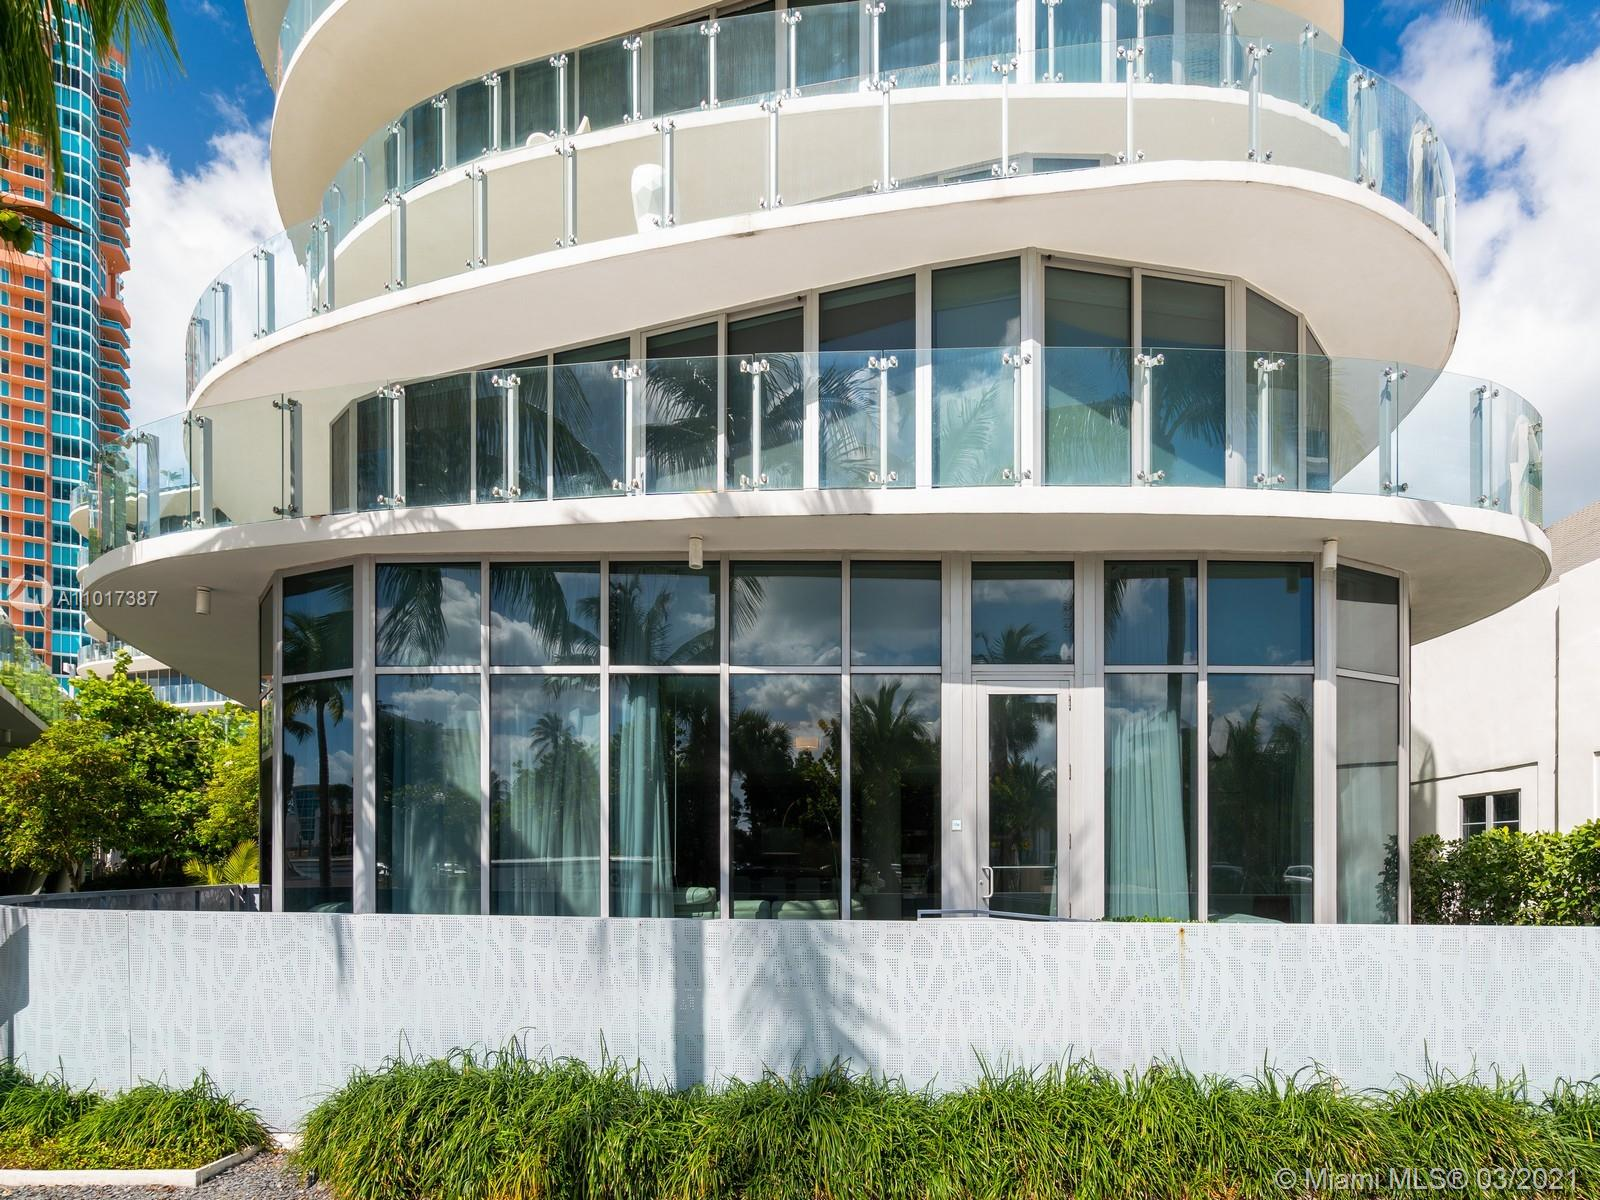 This Ultra Luxury Condominium offers a 2/2 with easy access in and out of the unit, no elevator needed. Very Elegant and unique all around offering top of the line appliances and open spaces, very conveniente for entertaining. This masterpiece is located in the best section of Miami Beach, known for providing its residents with endless opportunities, one is you're walking distance to the Beach. One Ocean Condo offers valet parking, 24 hour concierge service, amazing ocean views, exclusive membership to a private beach club, state-of-the art fitness center, an infinity edge pool deck designed by Swiss Architect Enzo Enea, and much more.